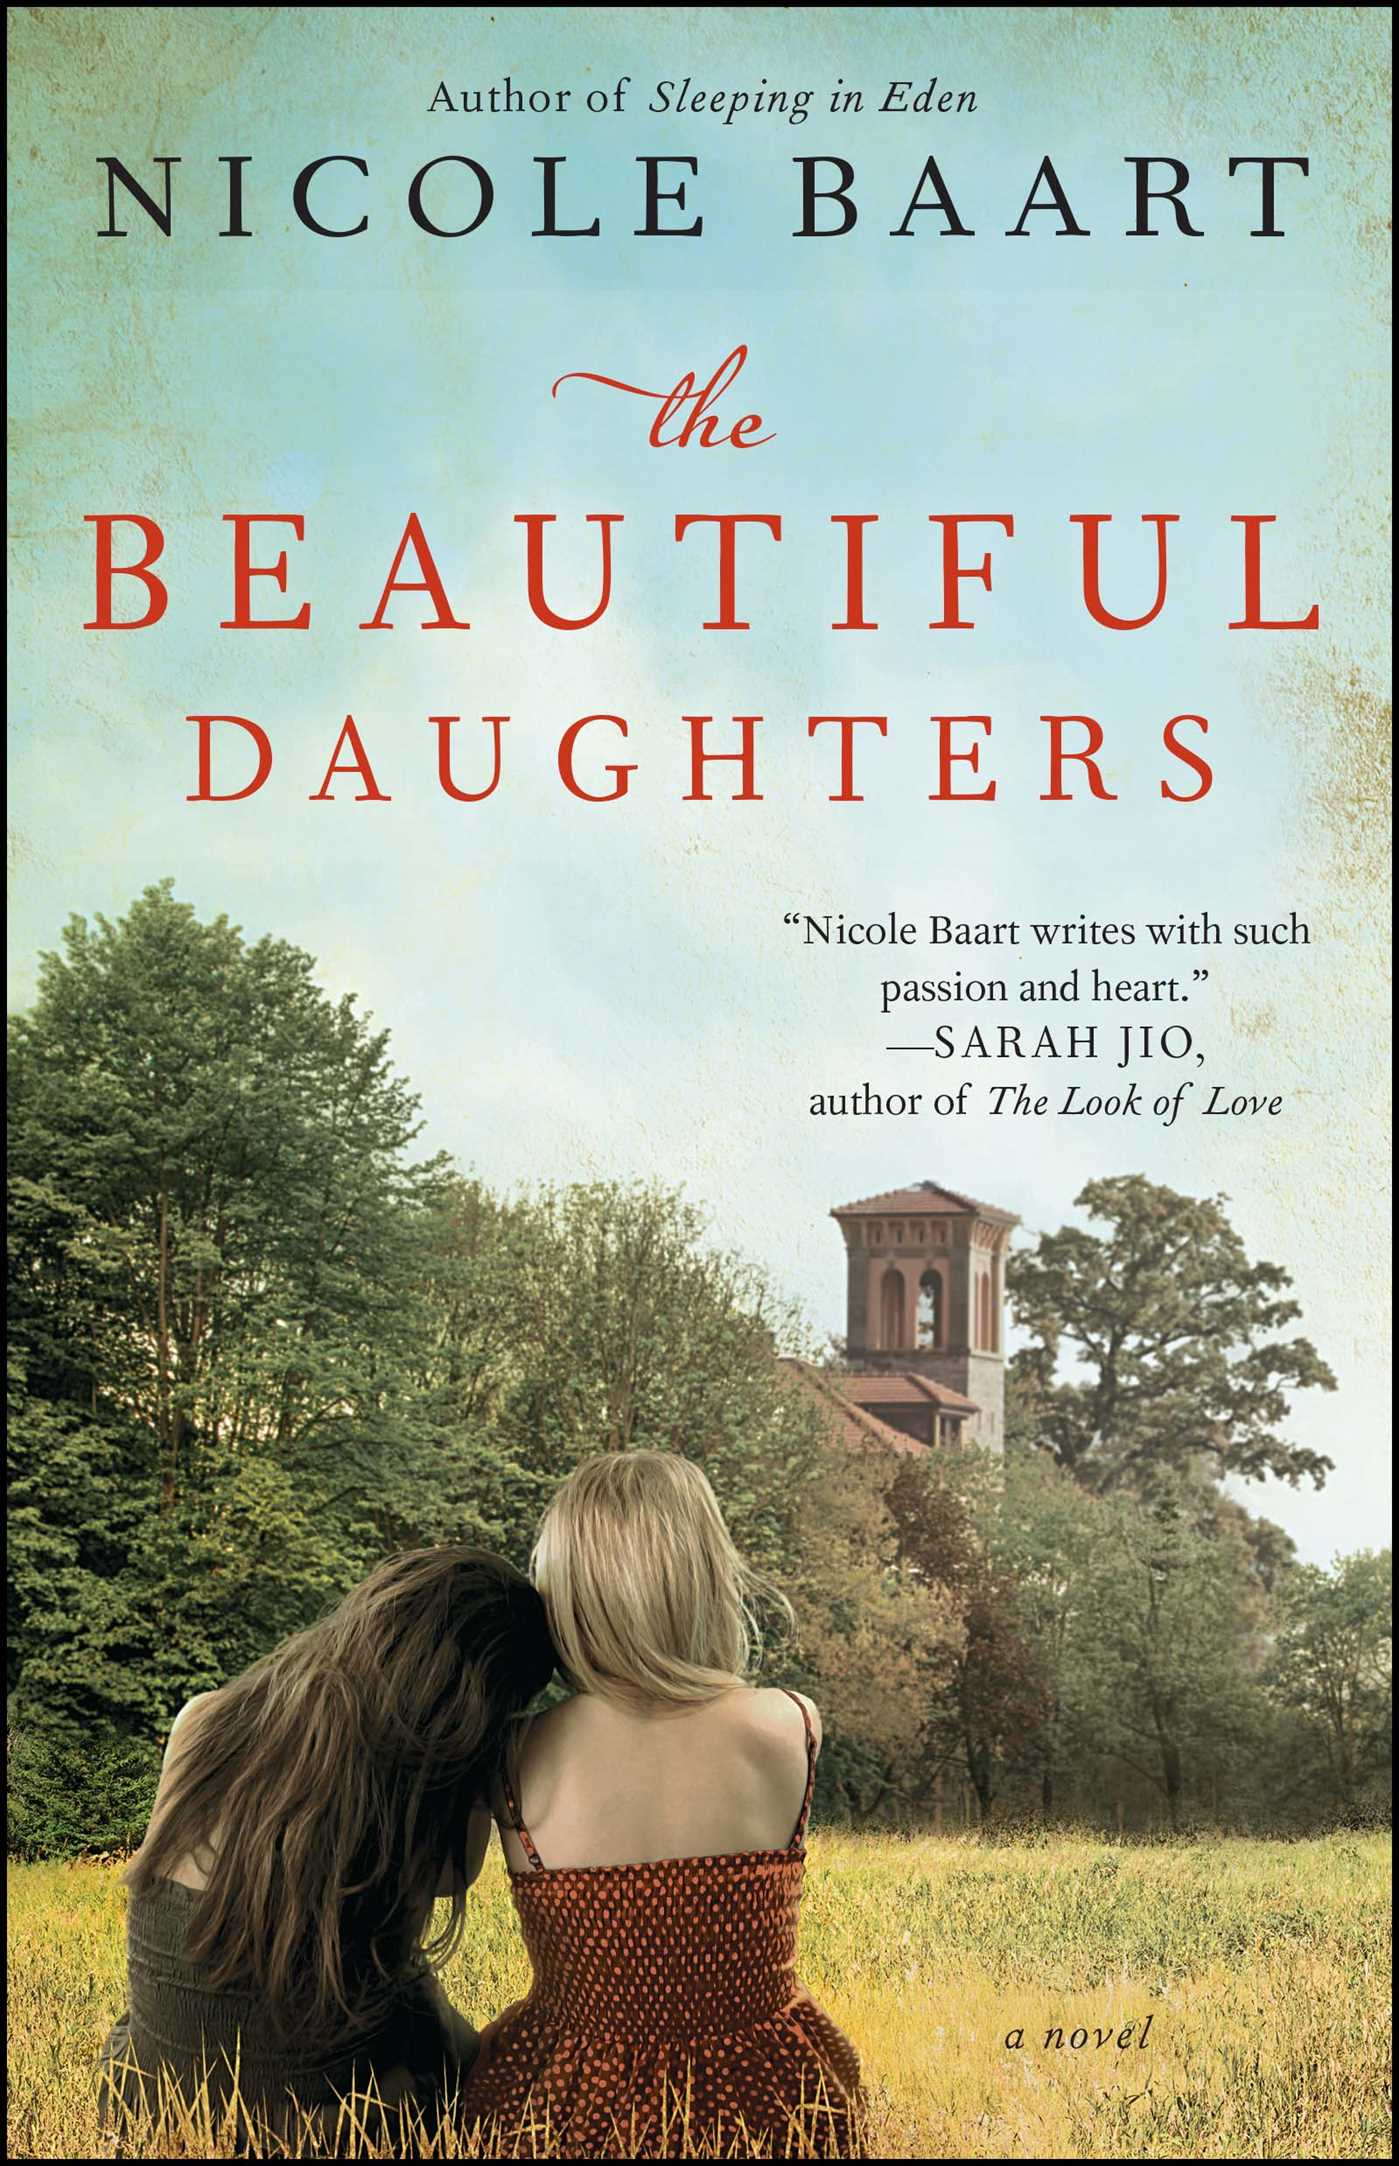 The beautiful daughters 9781439197387 hr